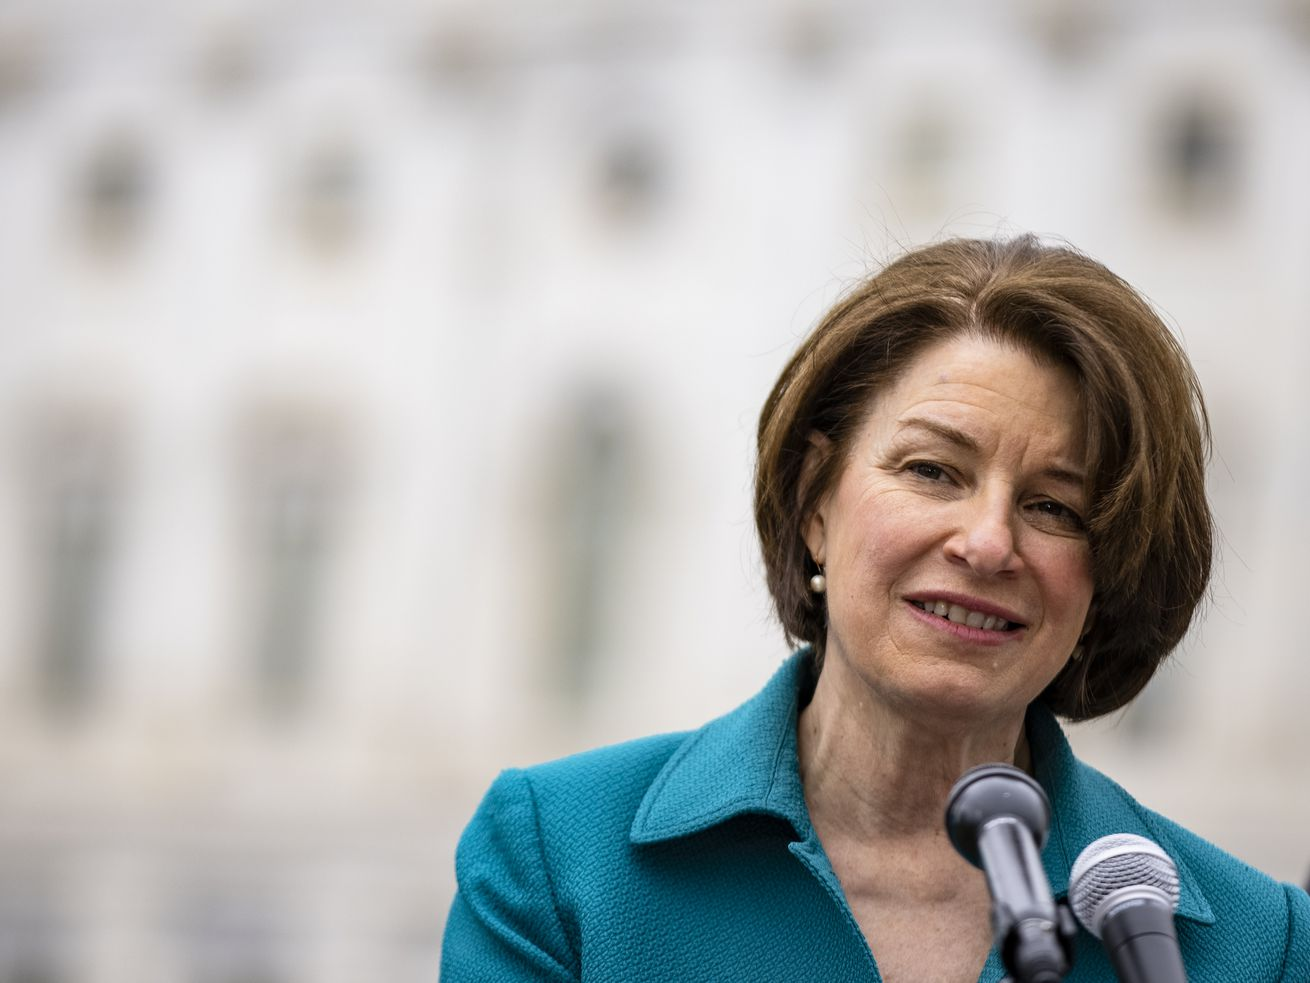 Amy Klobuchar takes aim at 12 vaccine misinformation influencers